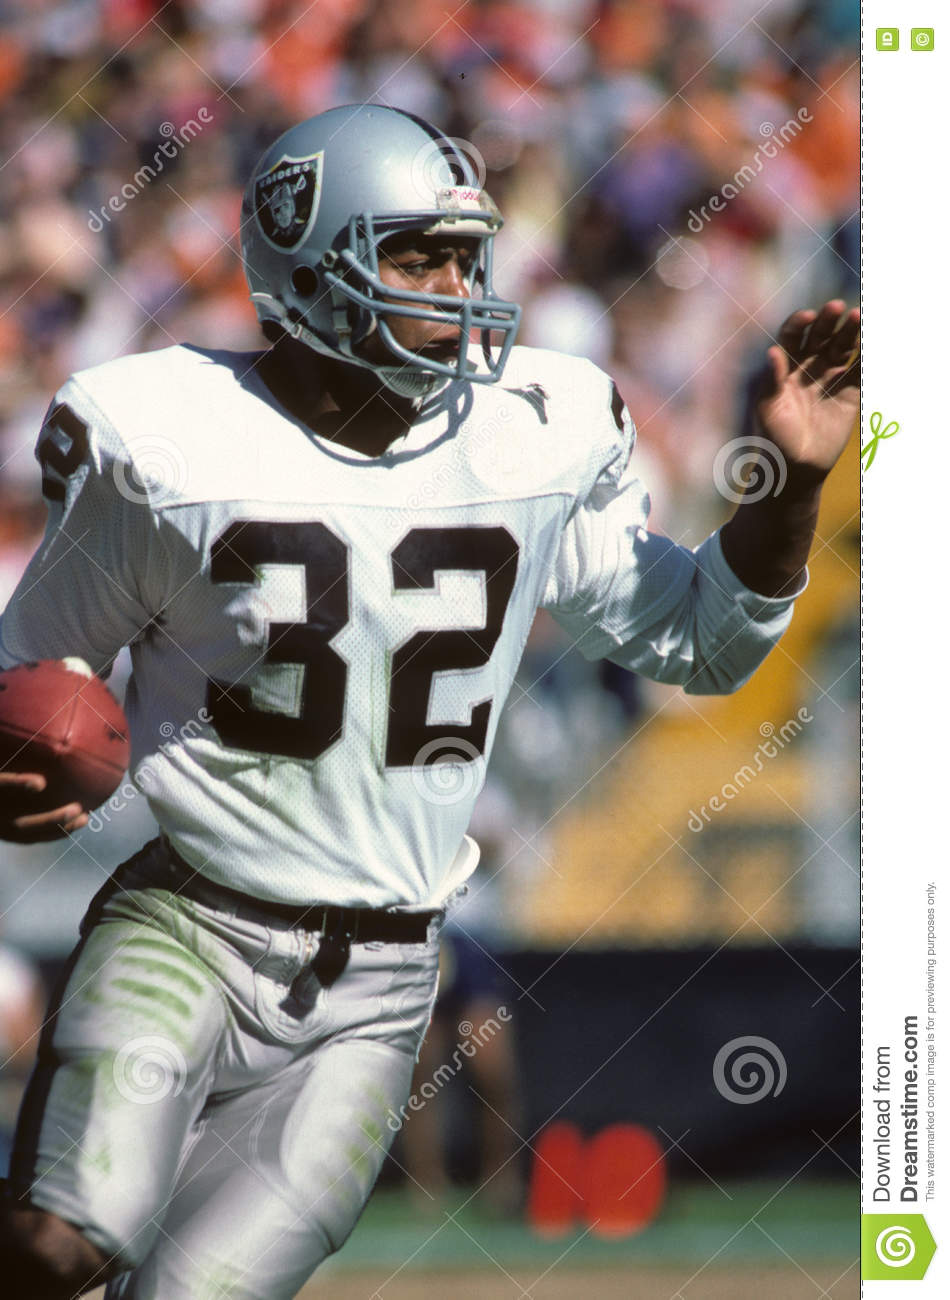 cf3ef7477d0 Oakland Raiders Stock Images - Download 368 Royalty Free Photos